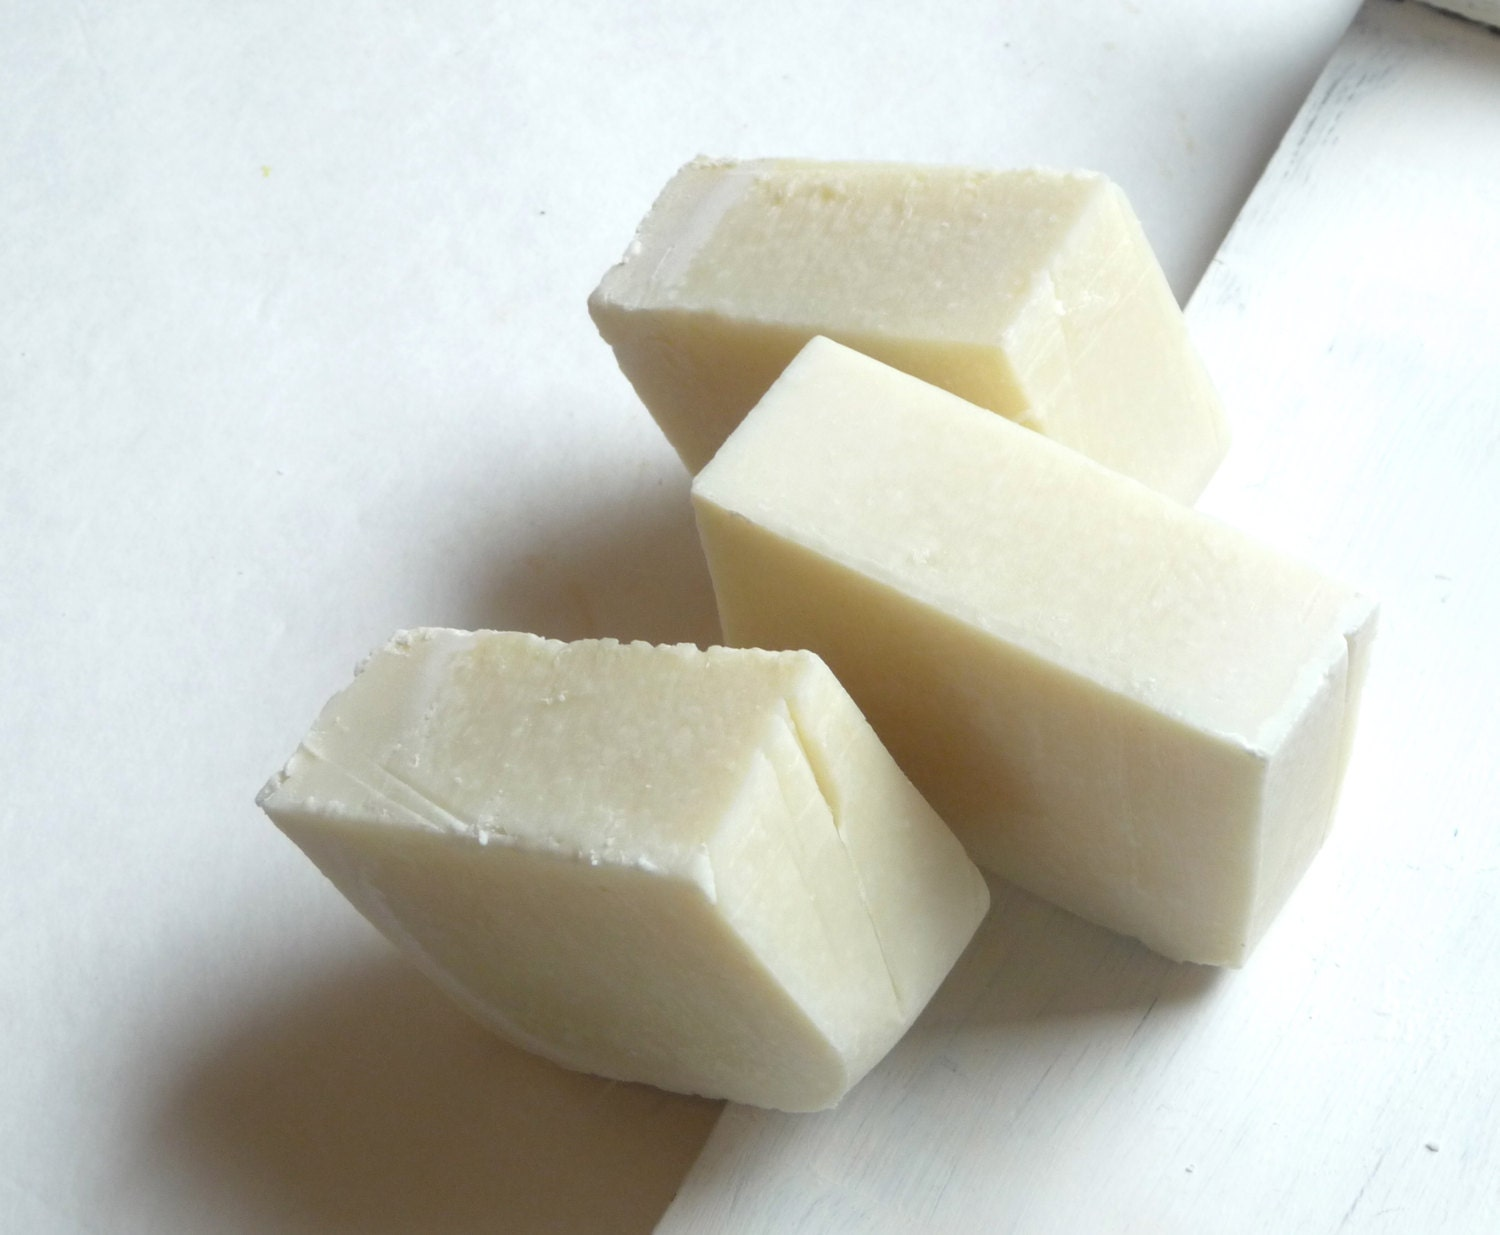 Fragrance Free Plain Soap, Cold Process Olive Oil and Coconut Oil Soap - Mylana